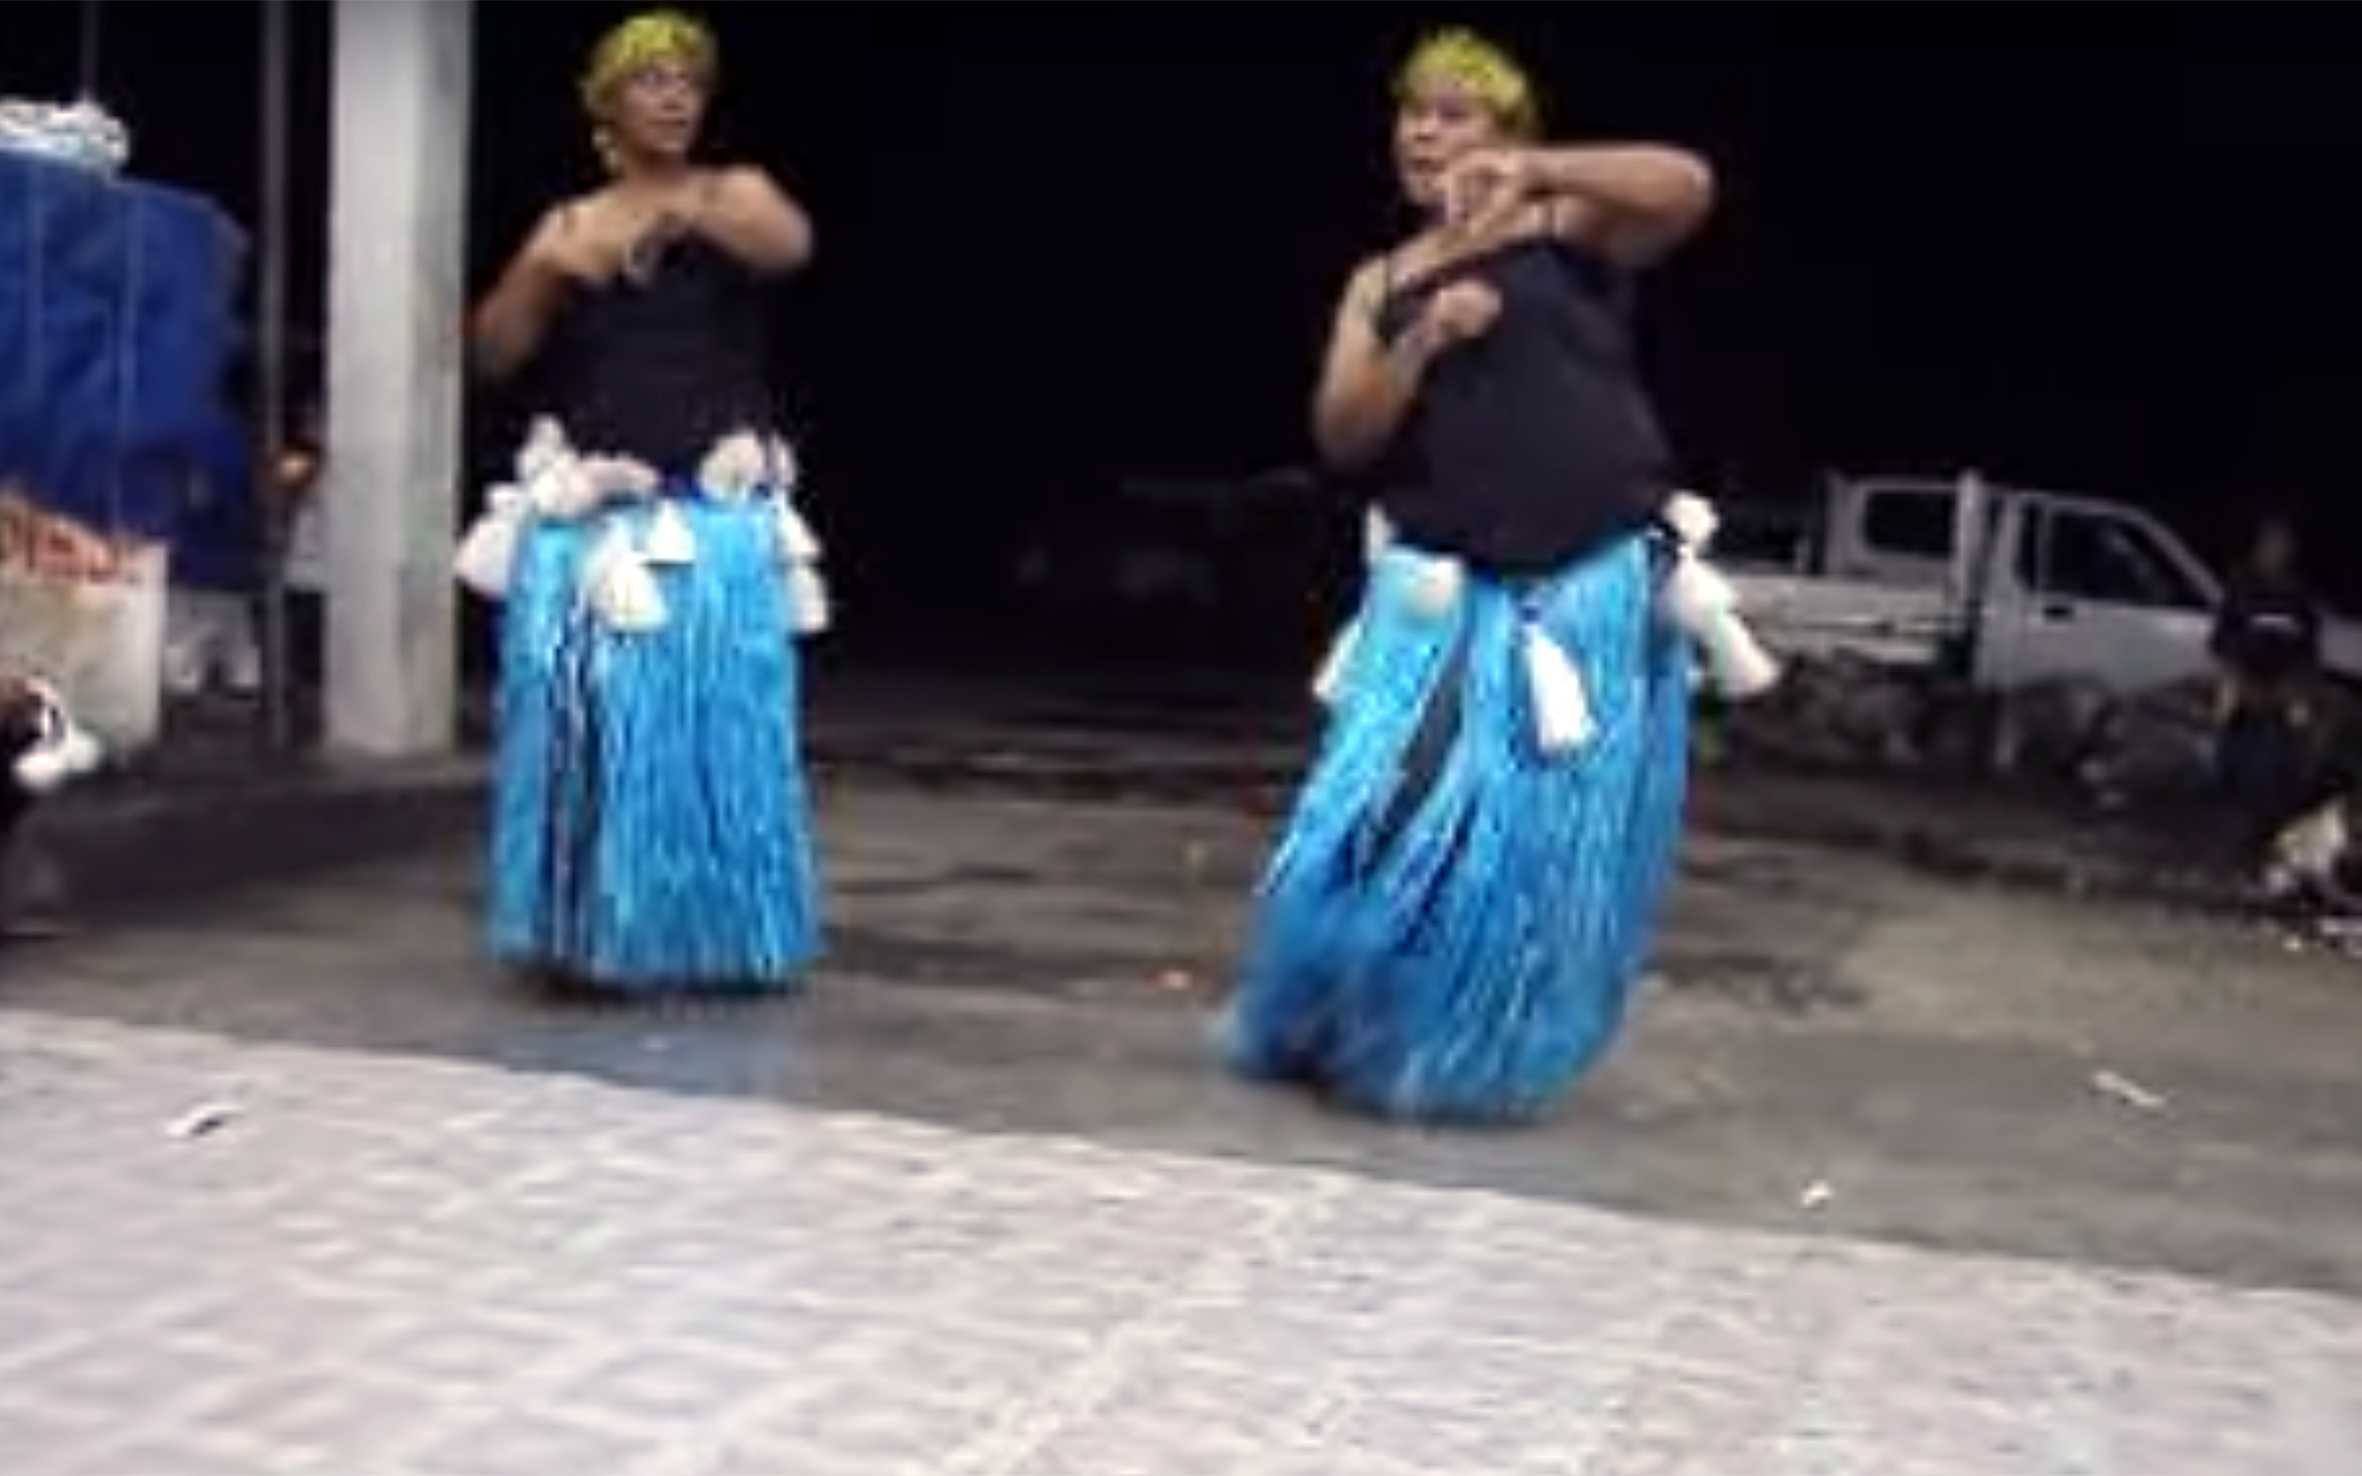 214. DANCE OF A FISH / Nauru - DANCE OF A FISH is a traditional dance coming from Nauru, a tiny island country in Micronesia, northeast of Australia. It is a dance to celebrate the catch of a fish, because fishing is an integral and imporant part of Nauru living and culture. After the dance, the dancers and the community would eat the fish.